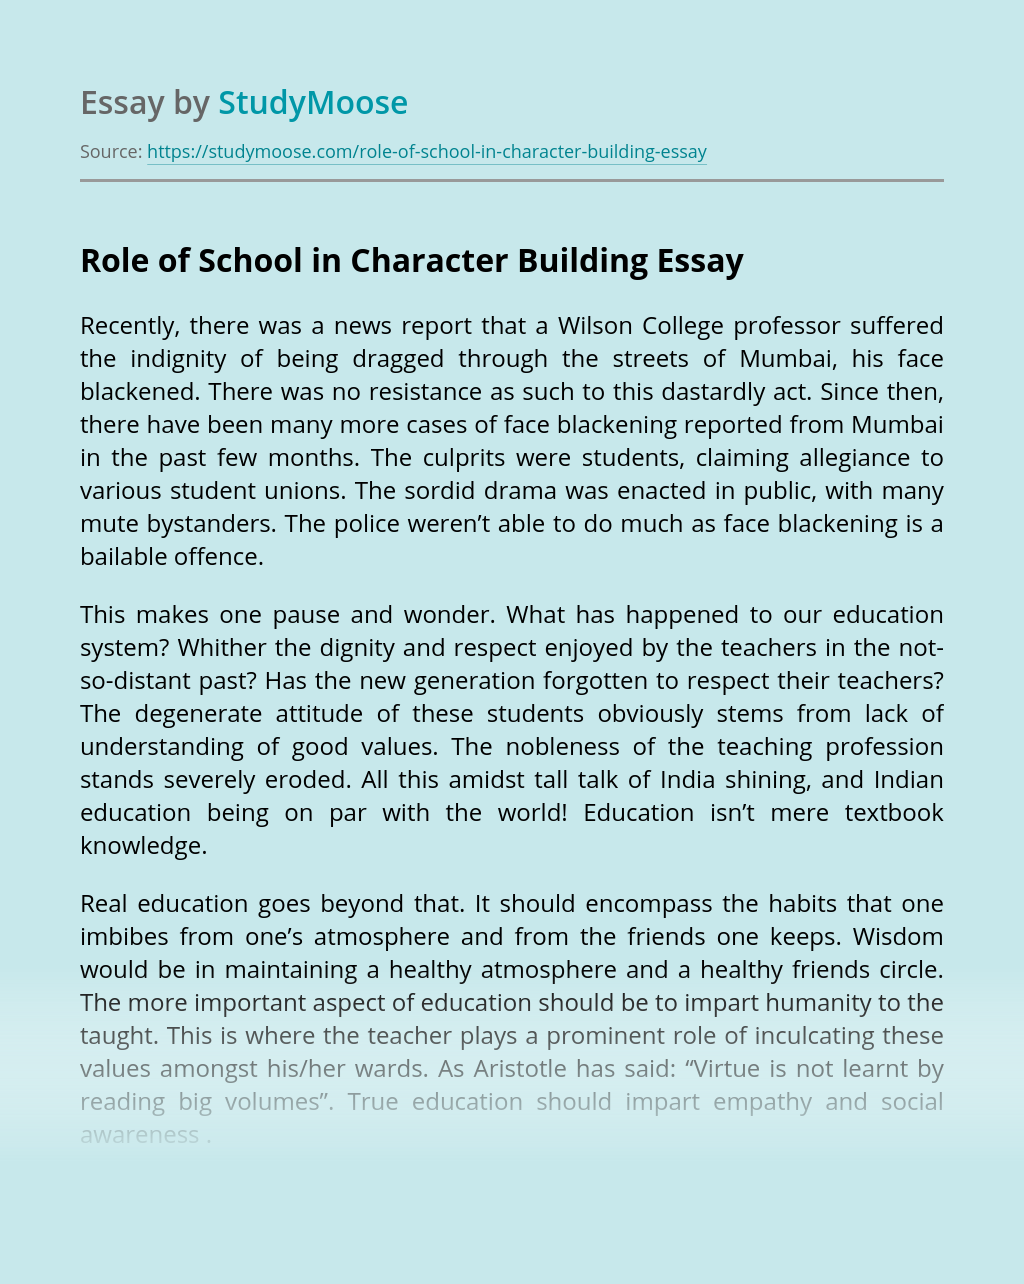 Role of School in Character Building